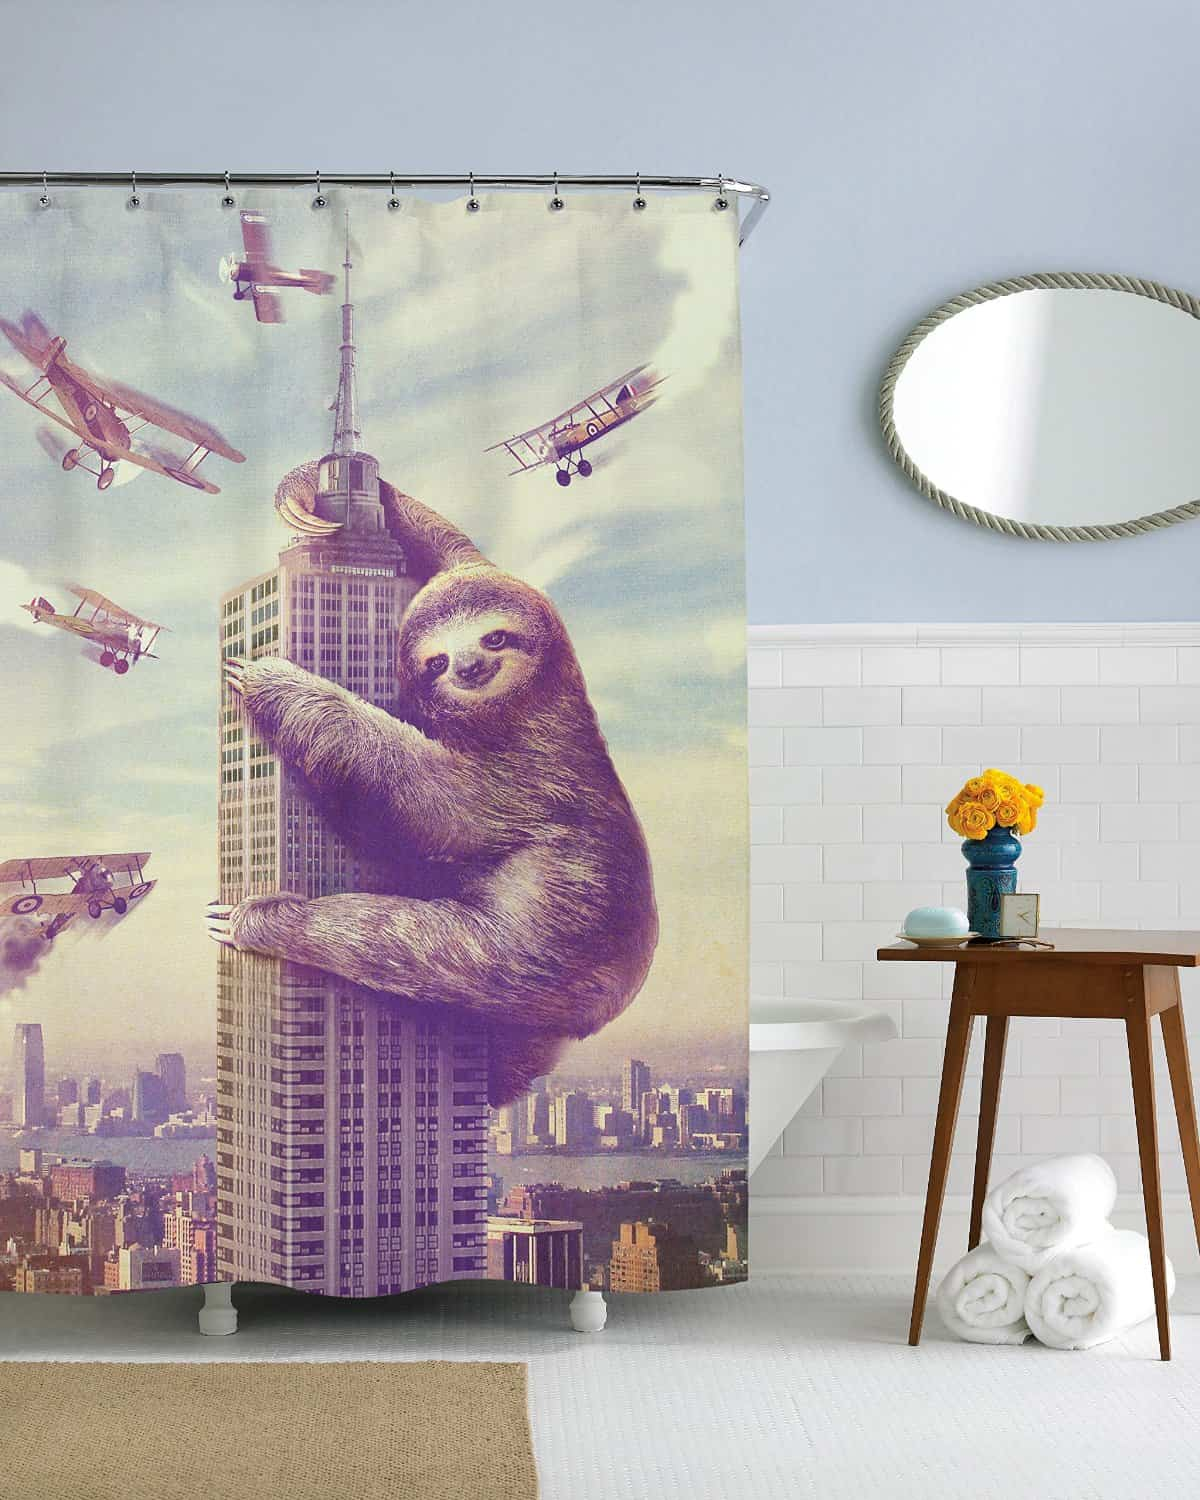 Slothzilla Shower Curtains Funny and Cute Bathroom Accessory for College Dorm